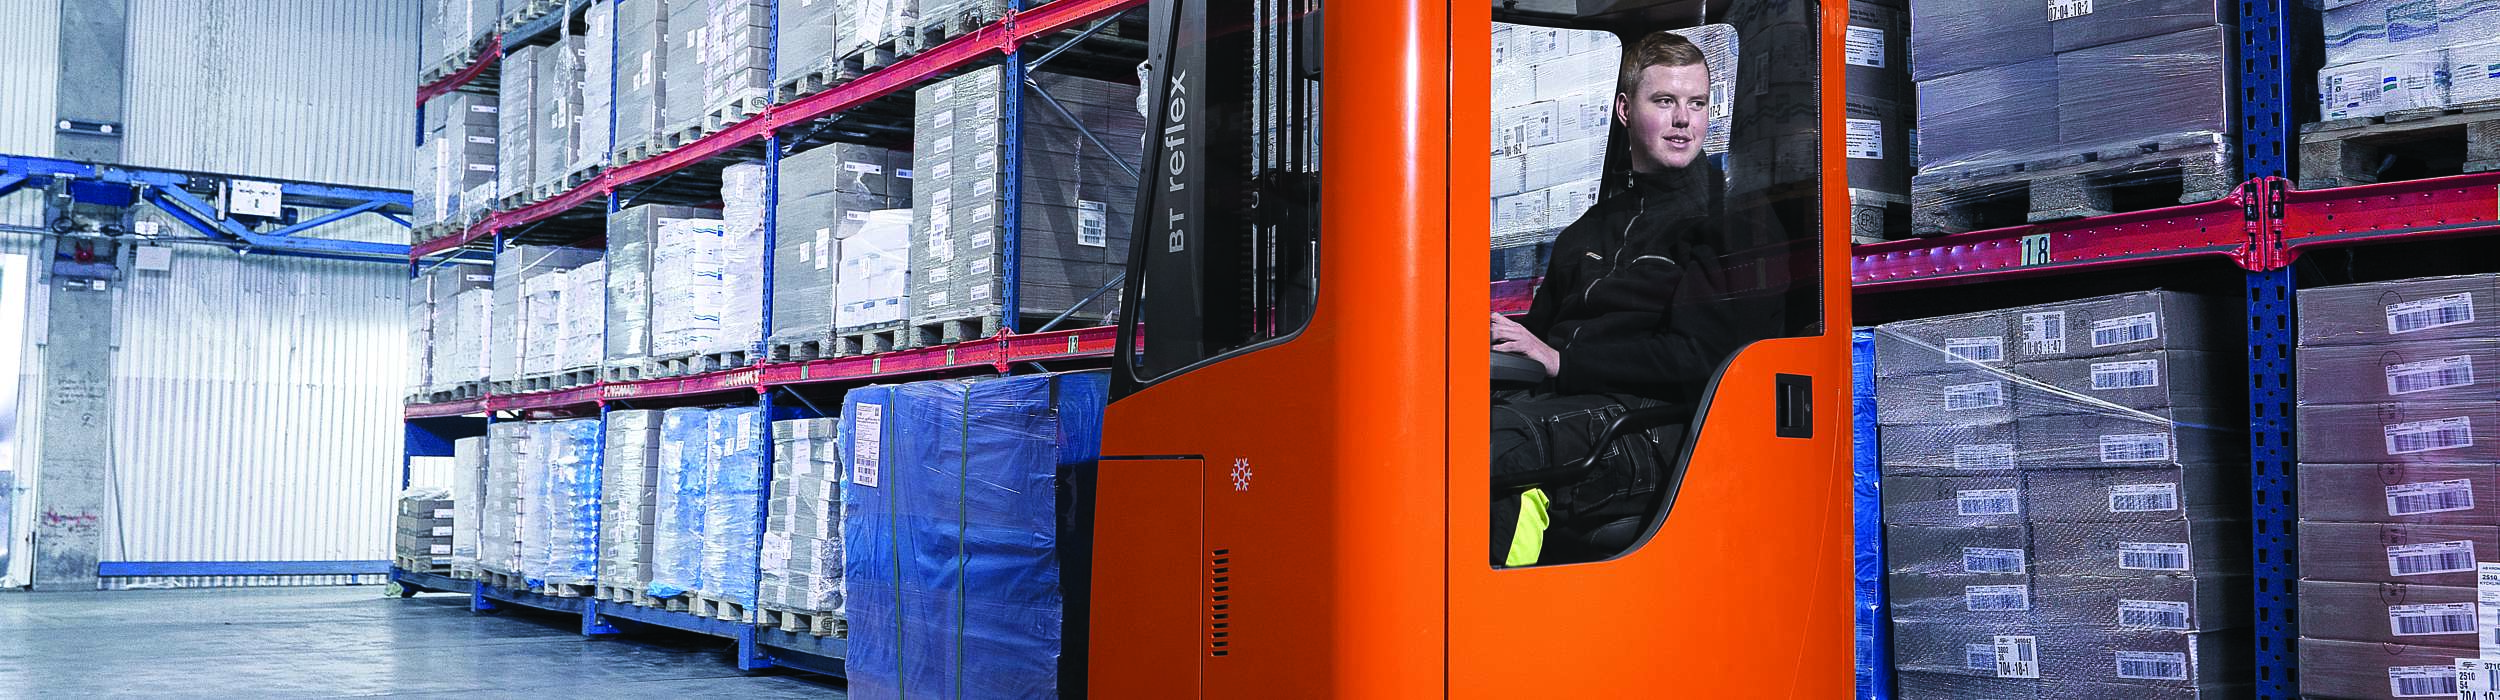 Cold store specification reach truck